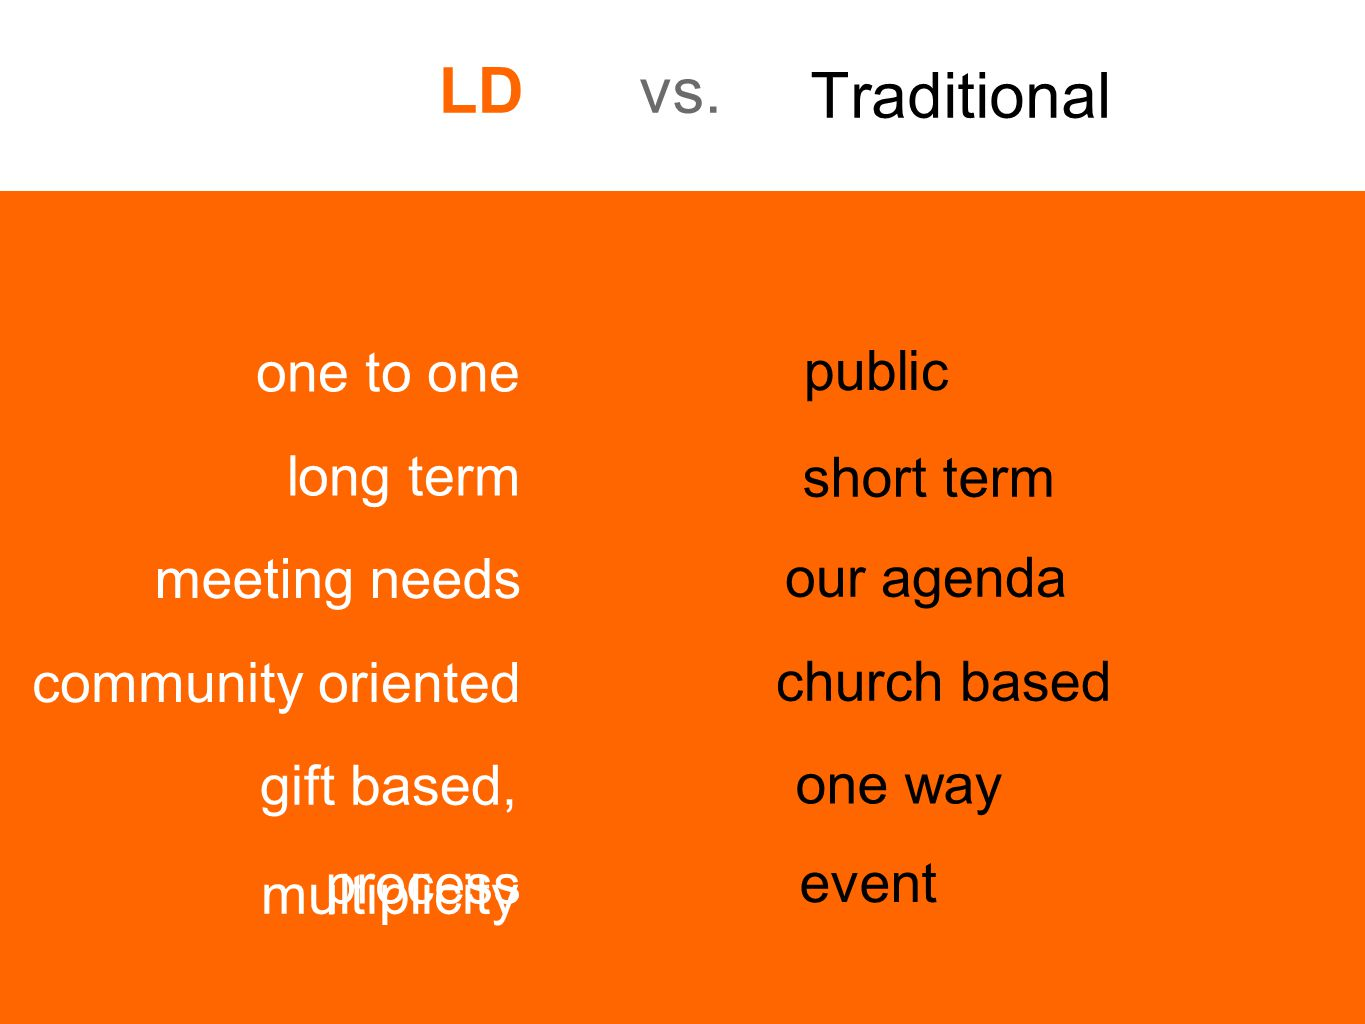 public one to one LDvs. Traditional long term short termmeeting needs our agenda community oriented church based gift based, multiplicity one way proc